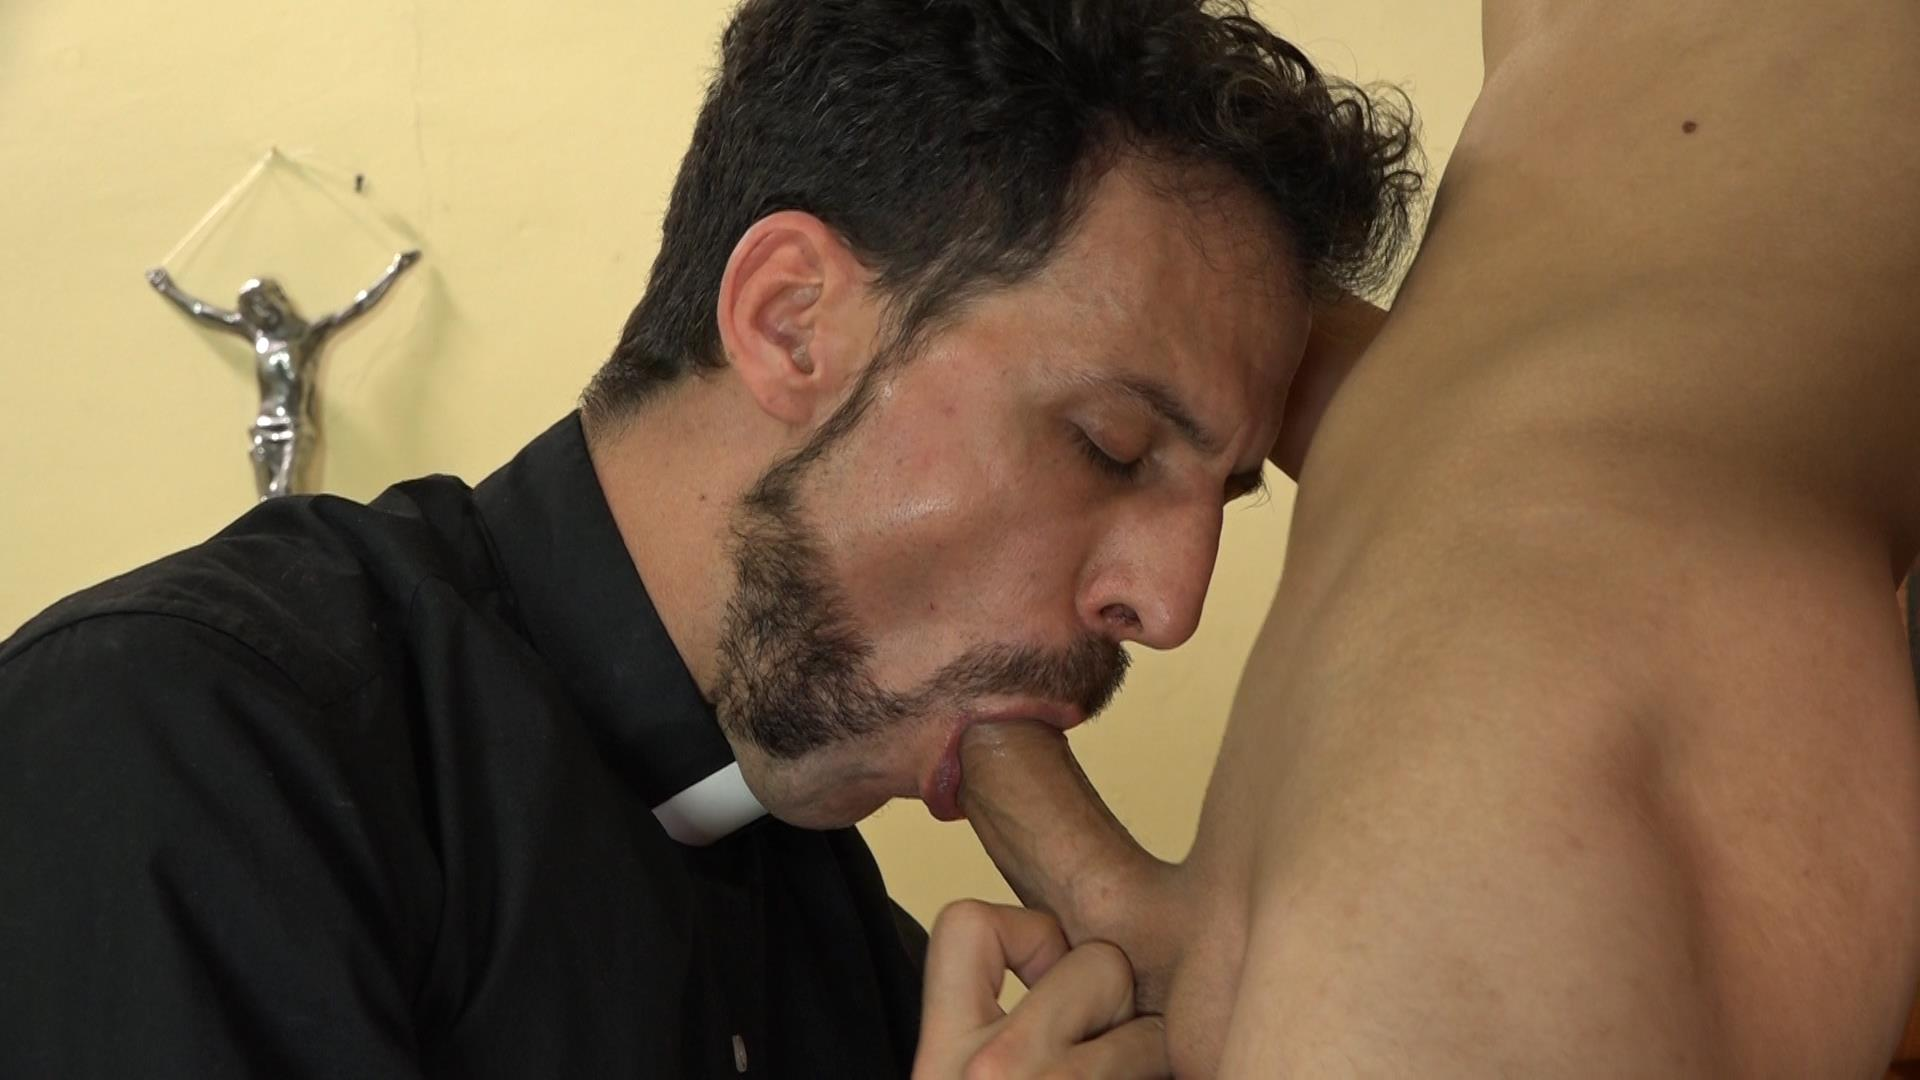 Bareback-Me-Daddy-Catholic-Priest-Fucks-A-College-Student-Bareback-Gay-Sex-11 Getting Bareback Fucked By An Older Catholic Priest!